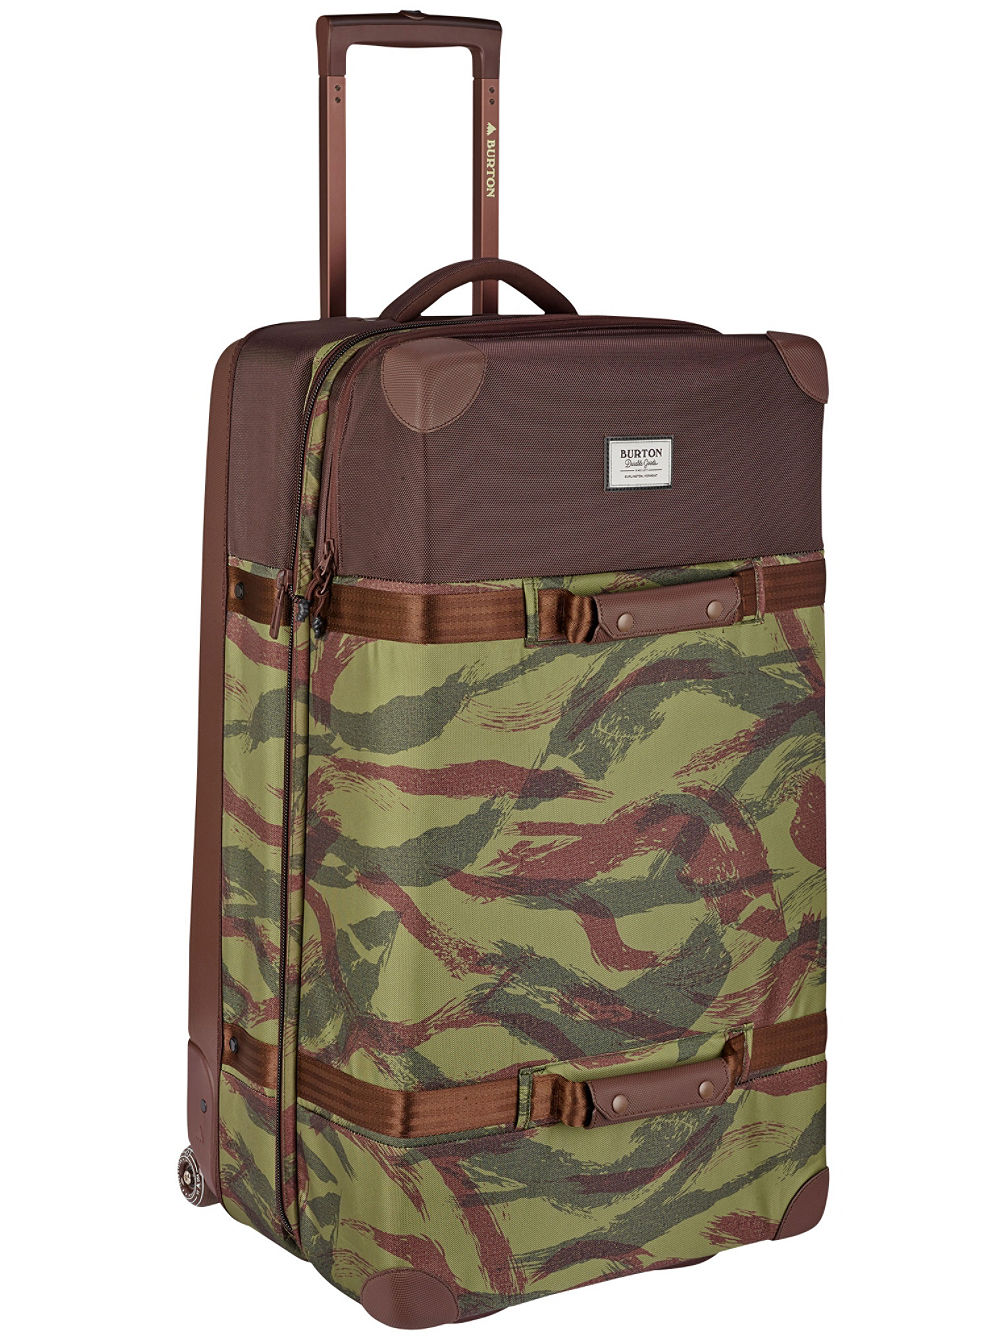 540a2d471a Wheelie Sub Travel Bag